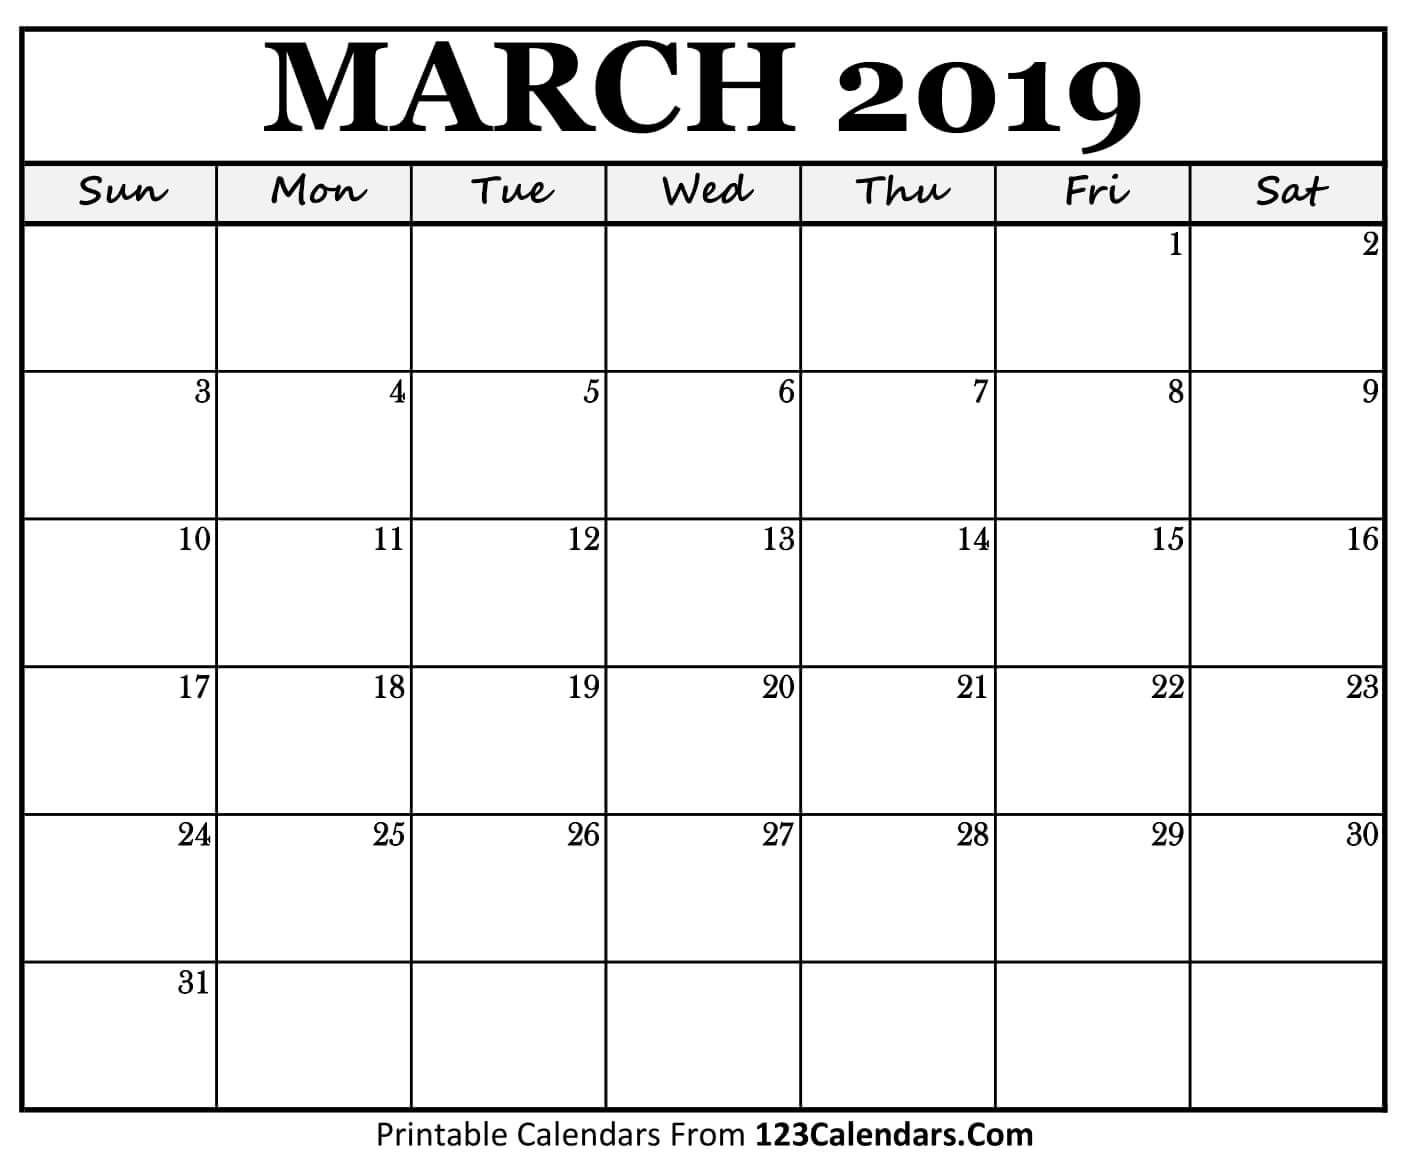 picture relating to Calendar March Printable titled Regular monthly Calendar March 2019 Template Free of charge Obtain Totally free